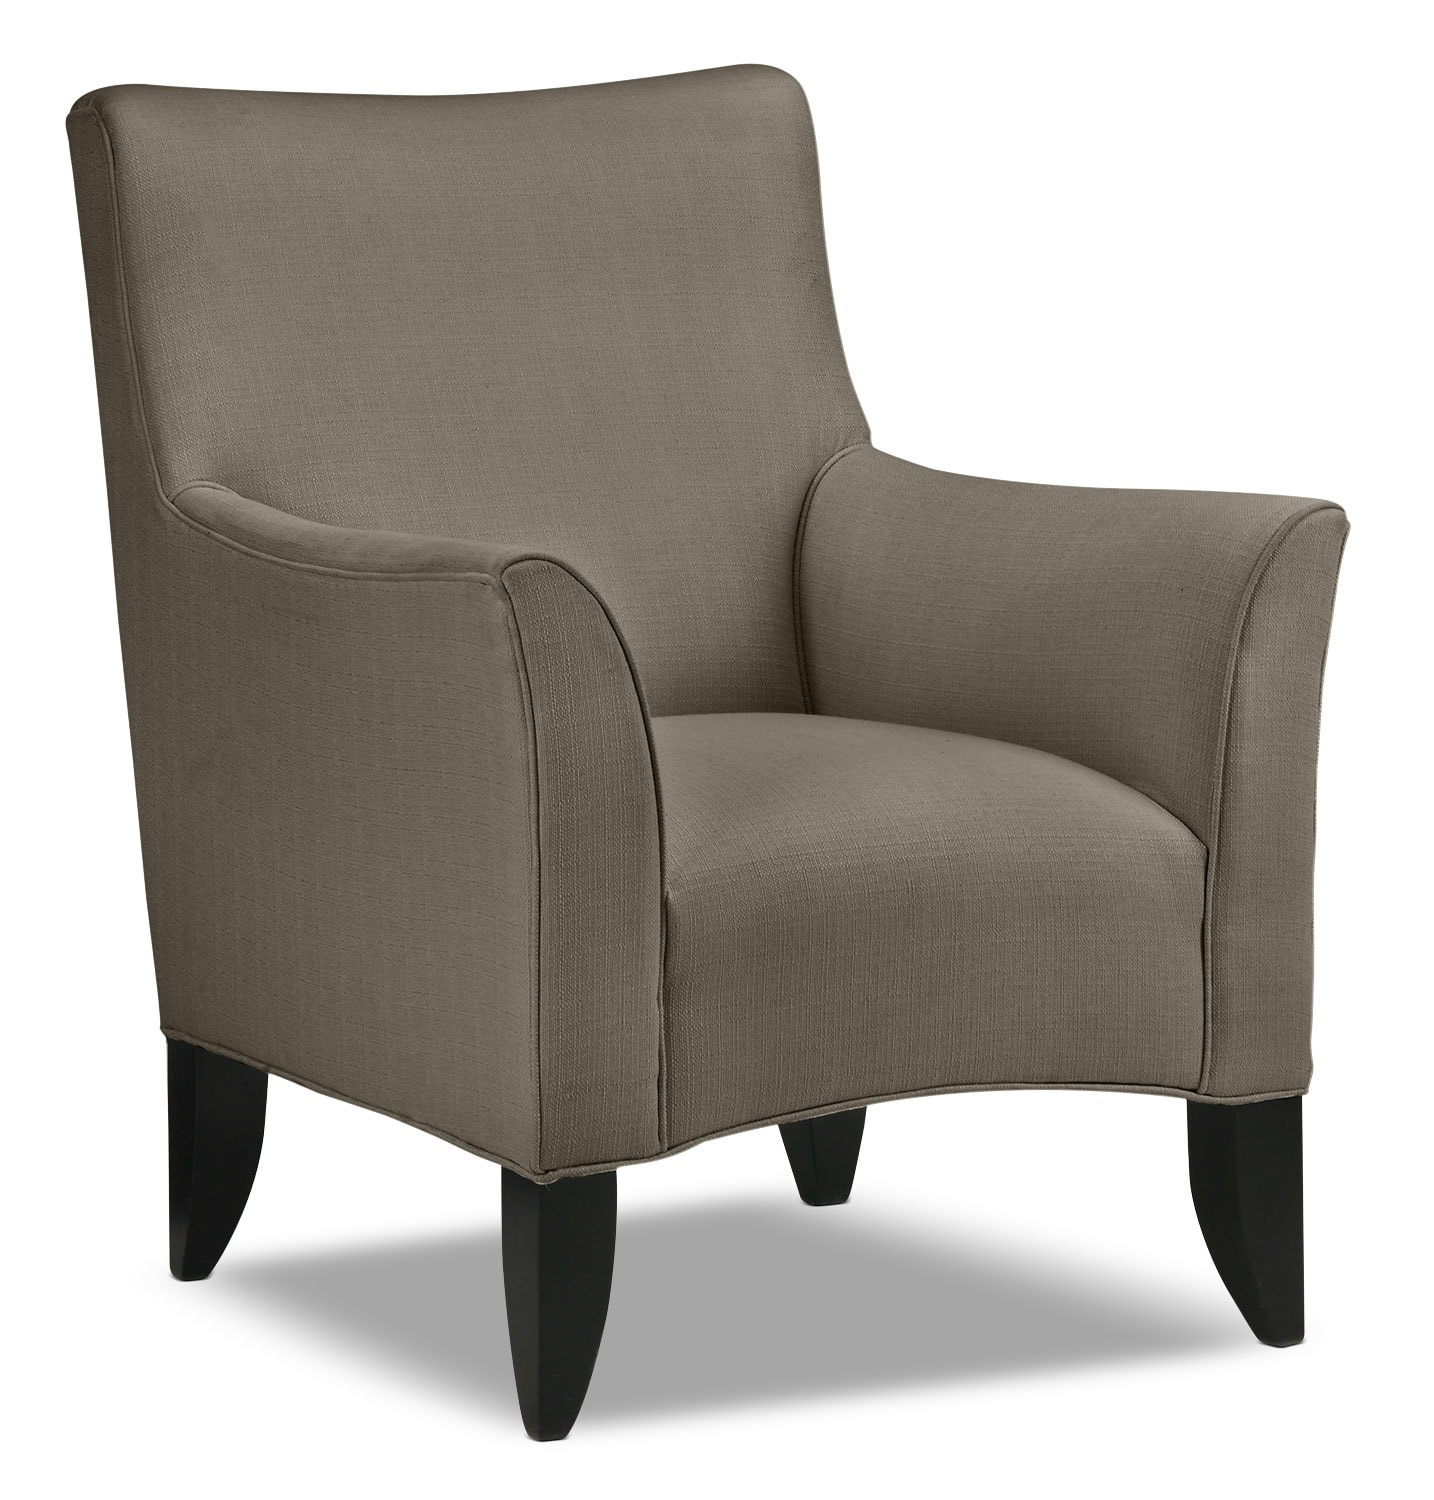 Klein Accent Chair - Grey